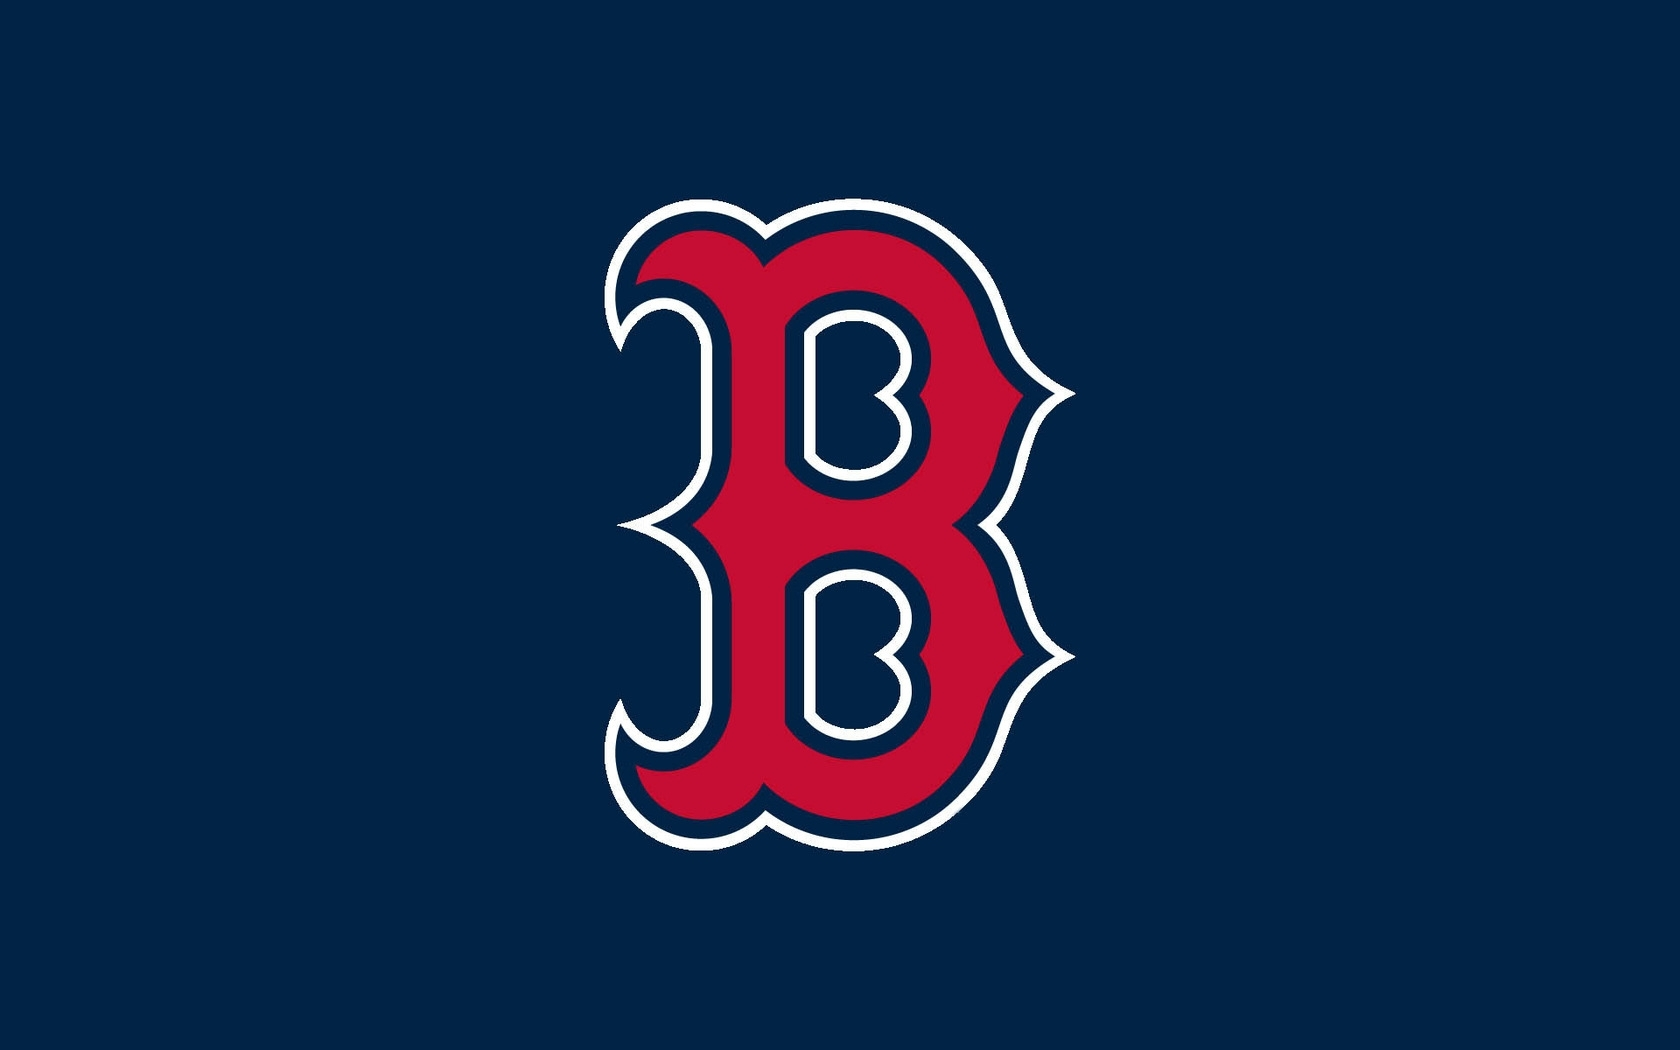 boston red sox cool wallpaper hd - http://imashon/sport/boston